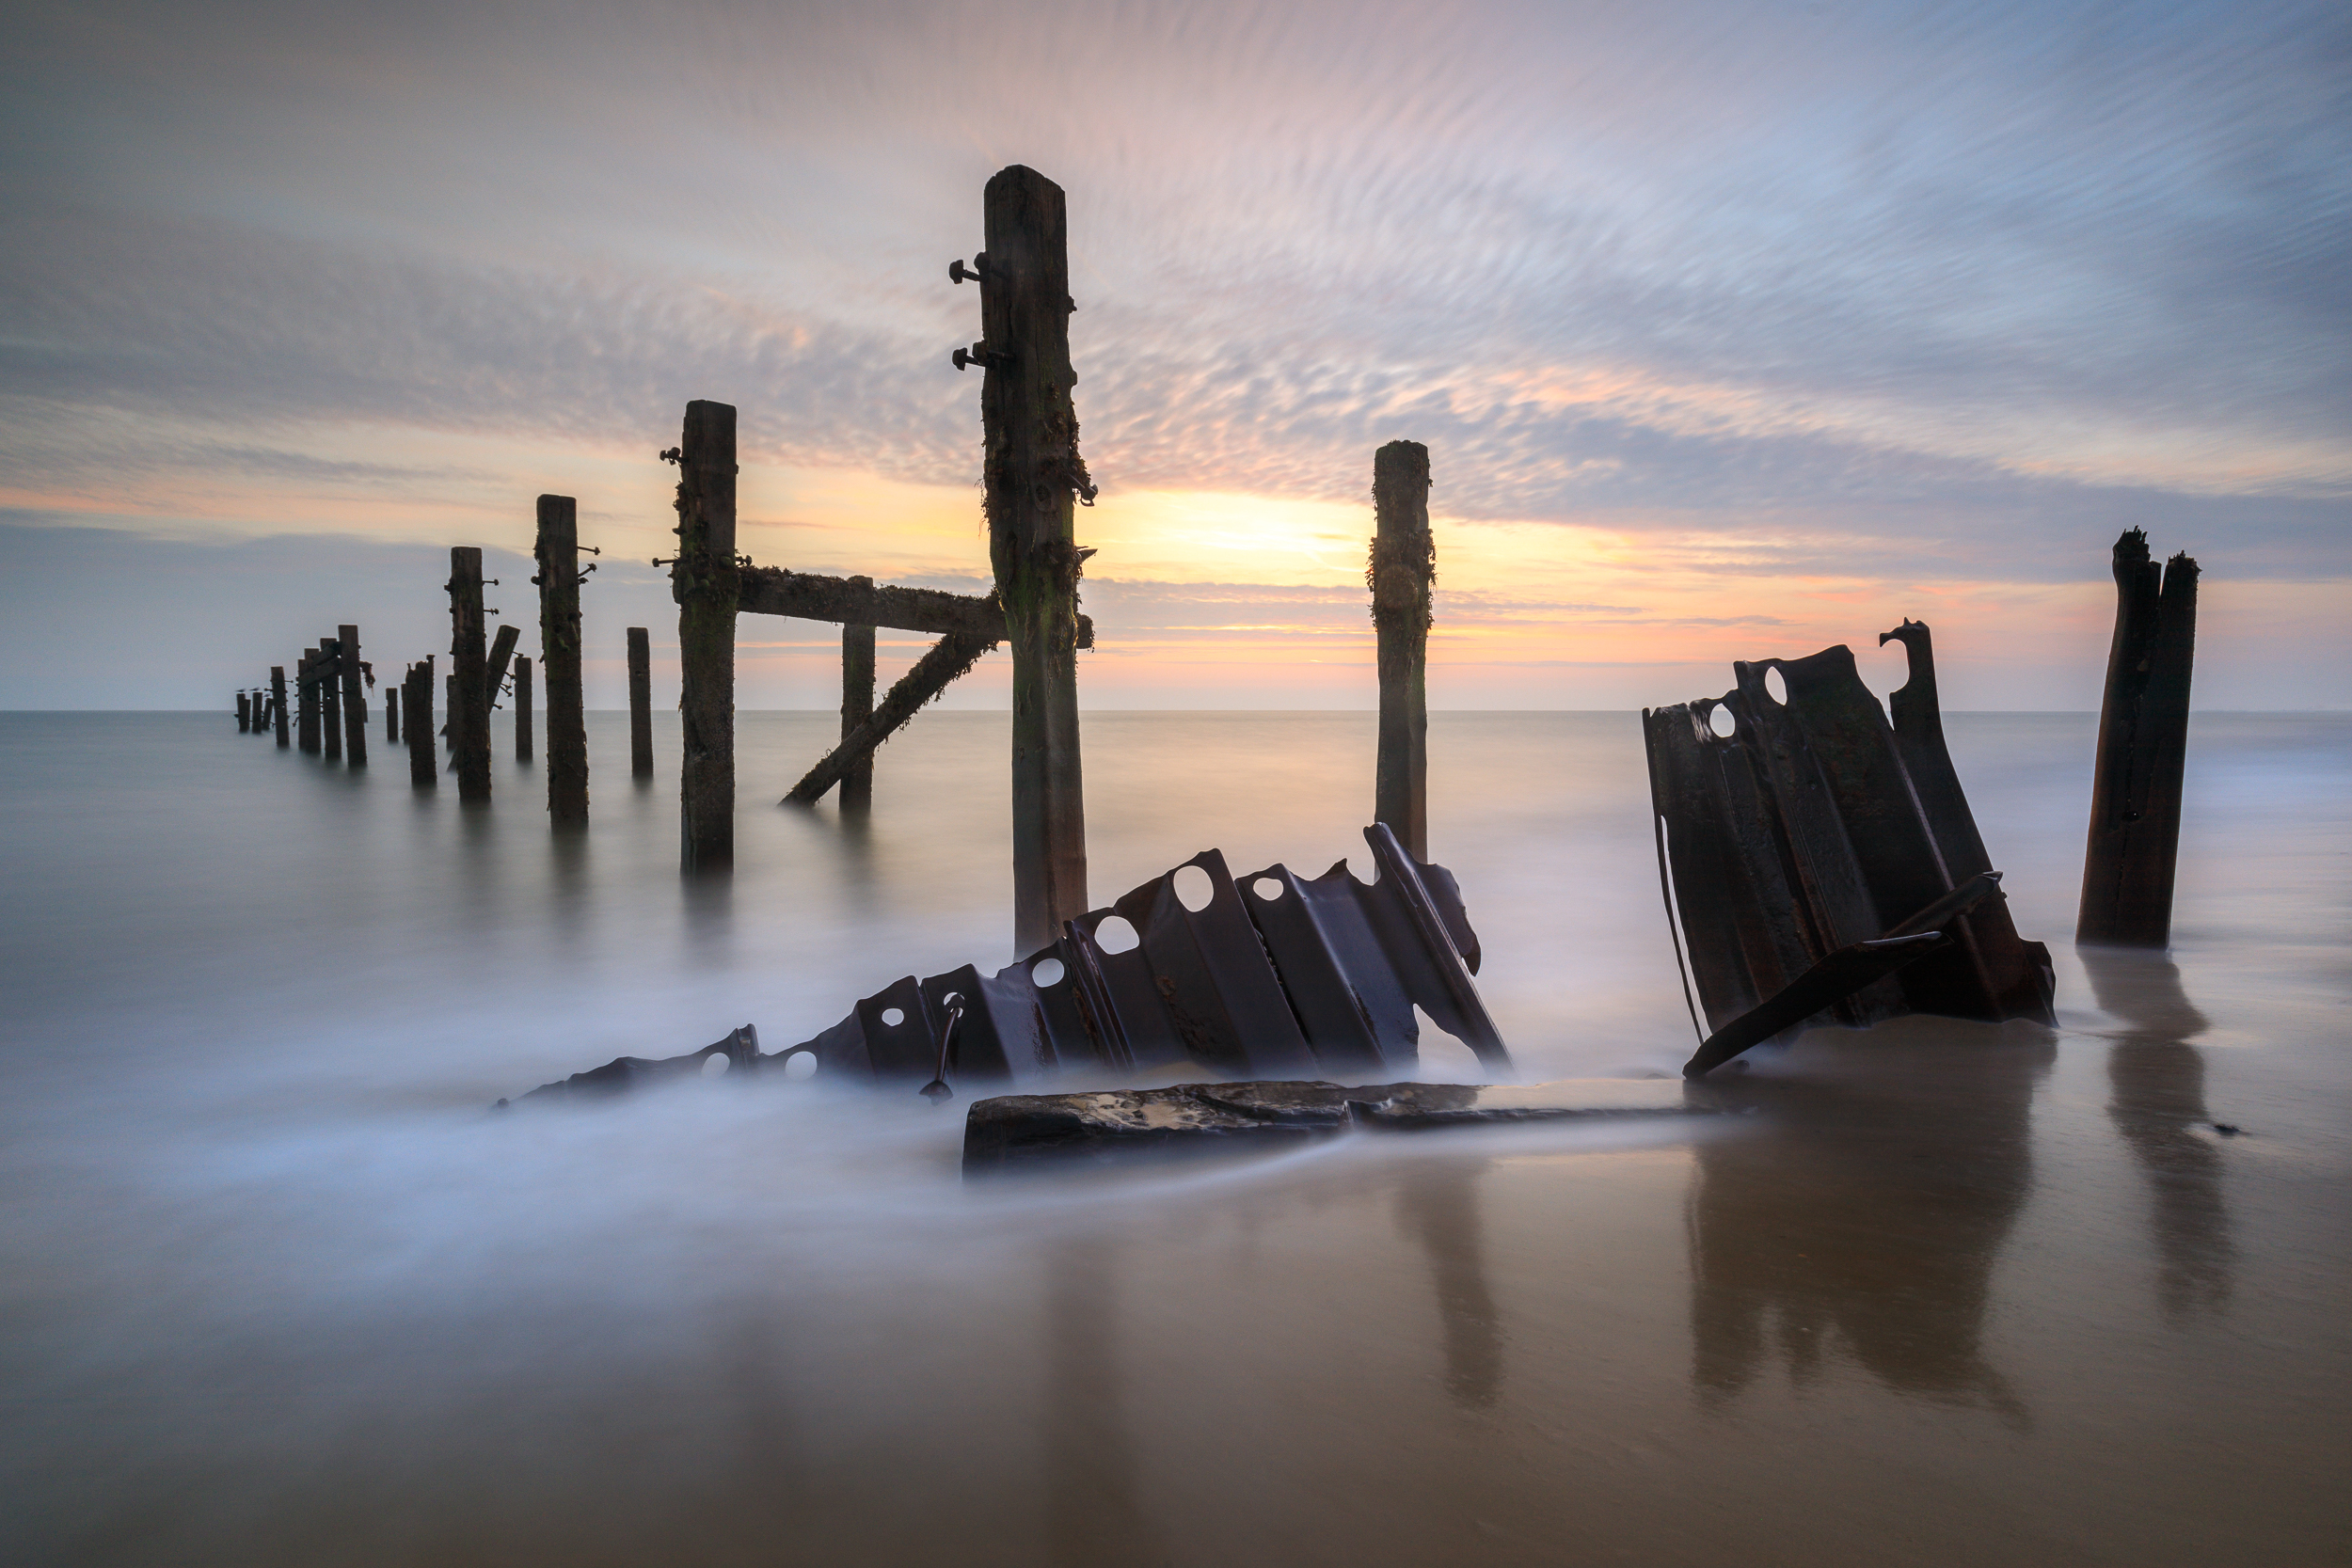 Sunrise at Happisburgh, Norfolk. Canon 5D mkIV, 16-35mm @ 16mm, 61sec, f11, ISO 100, Lee 0.9 reverse ND grad and Little stopper